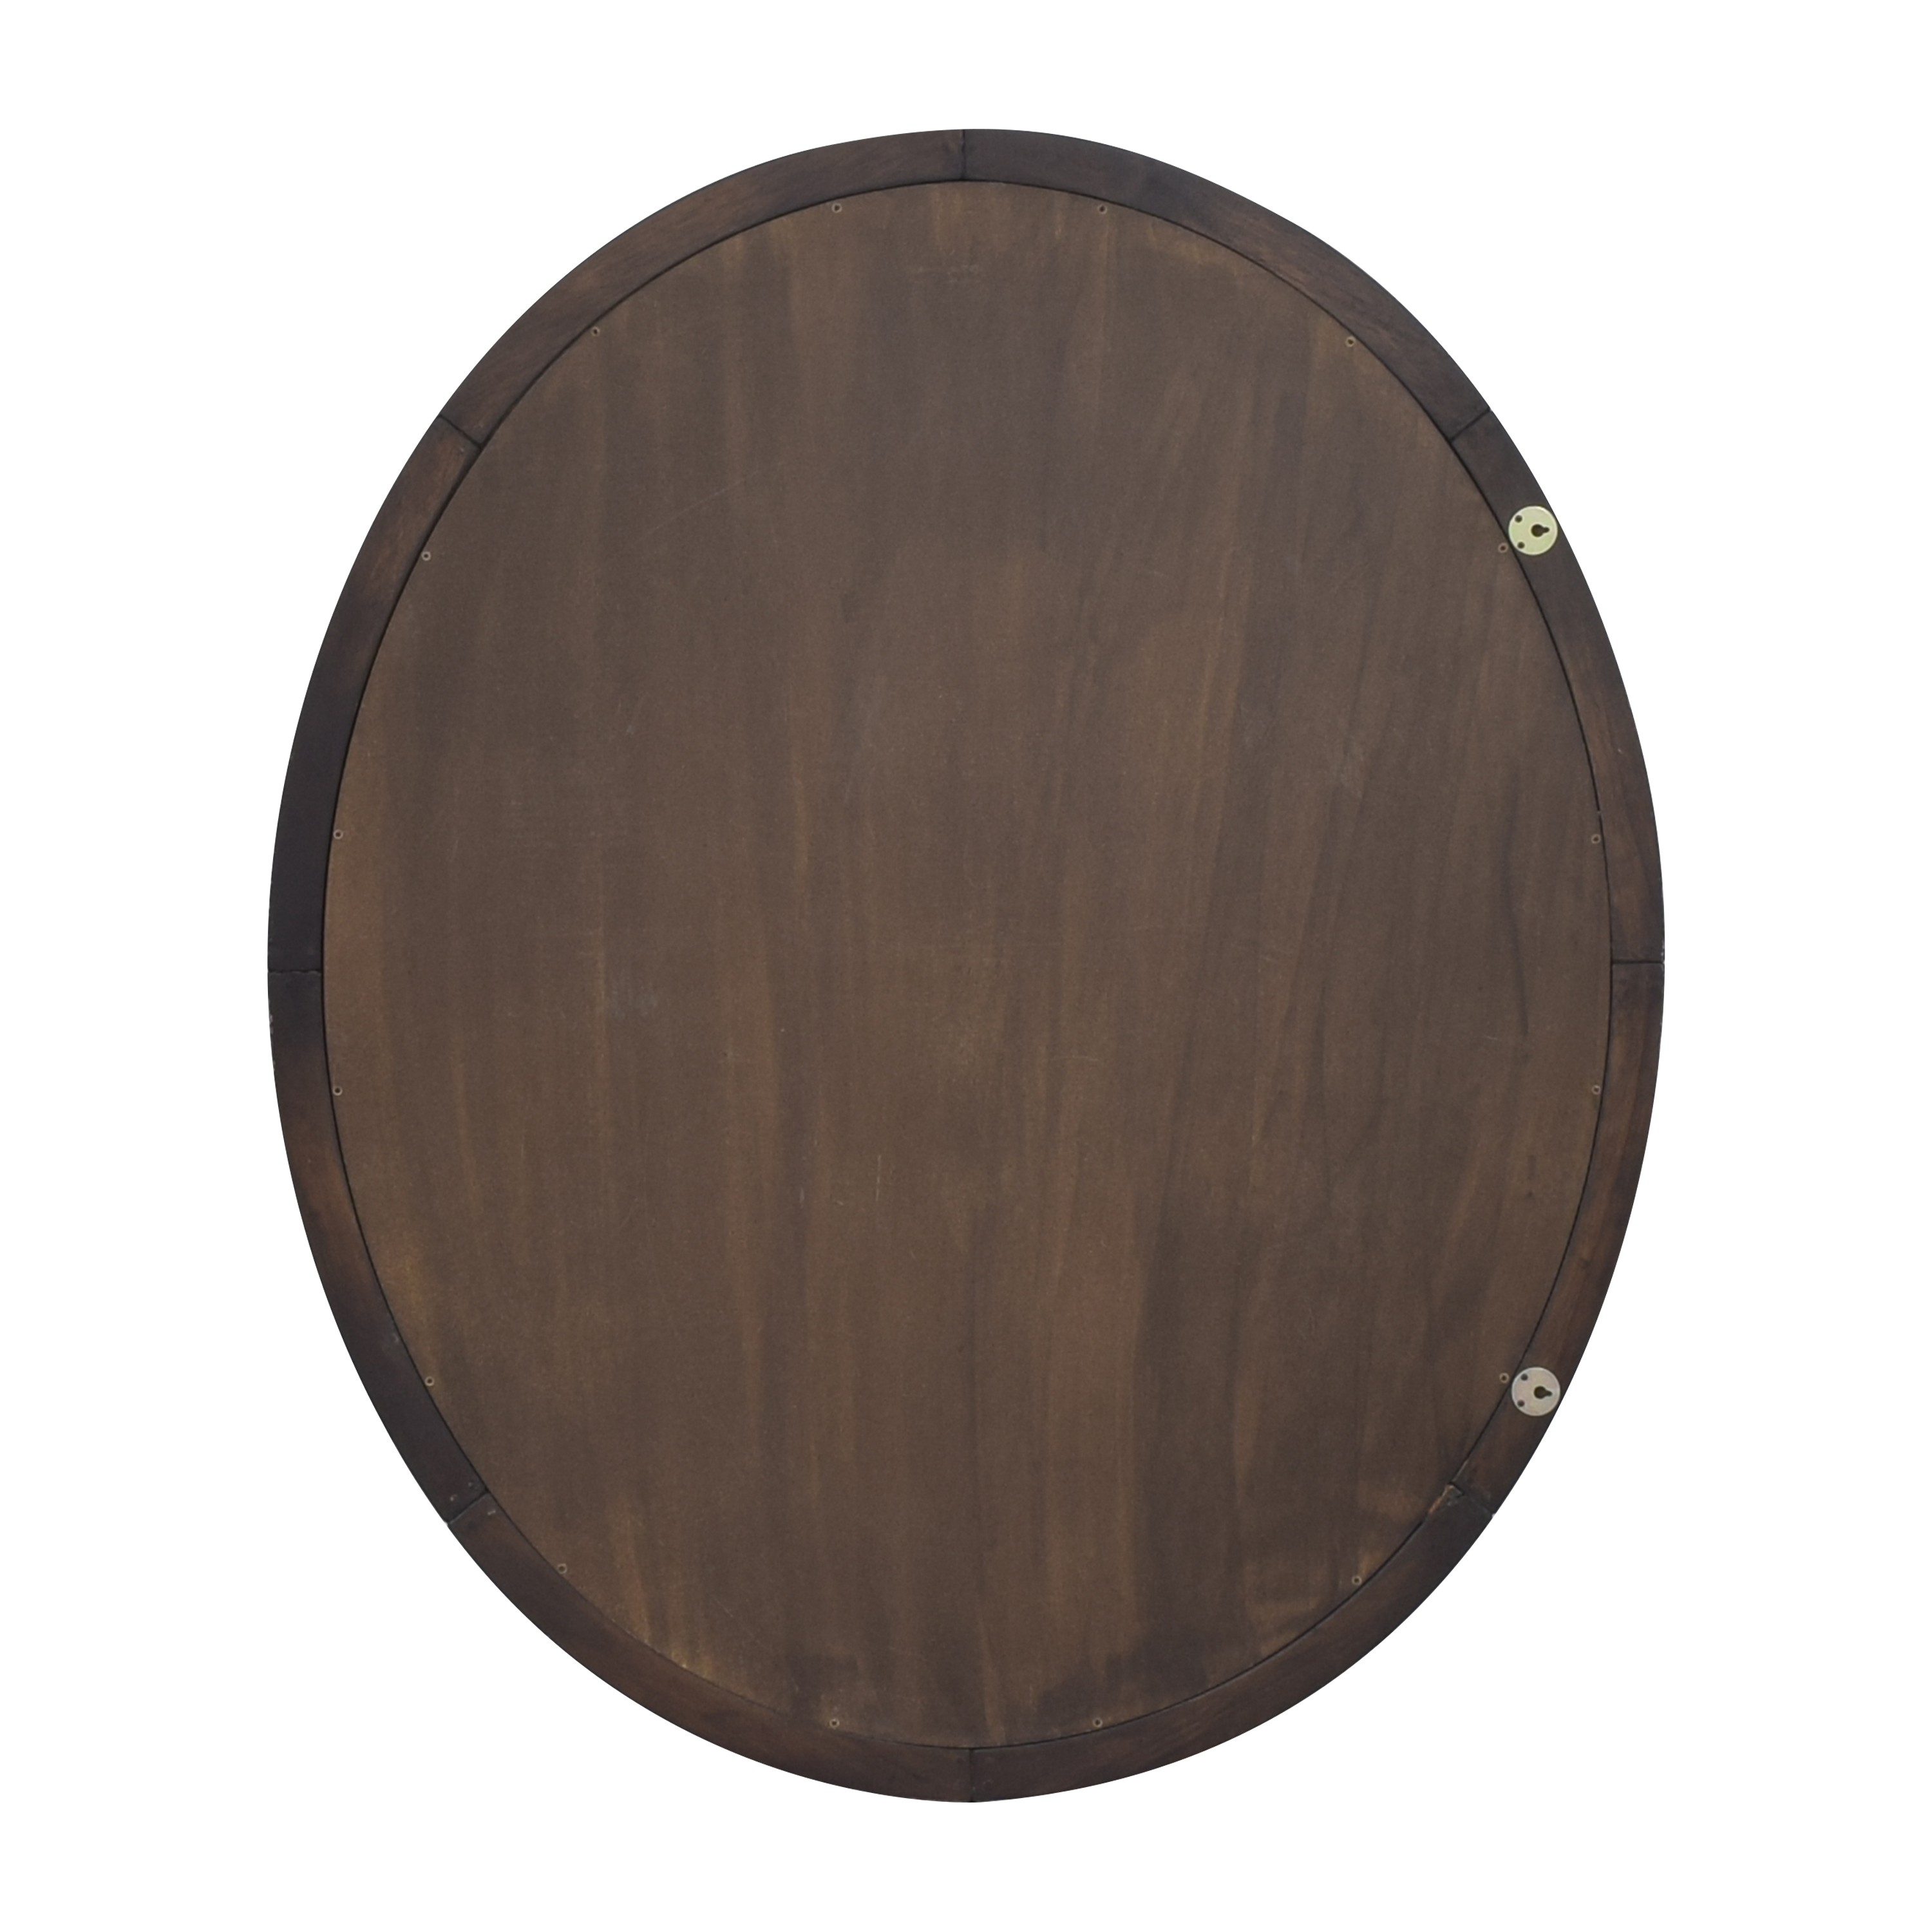 Framed Oval Mirror used